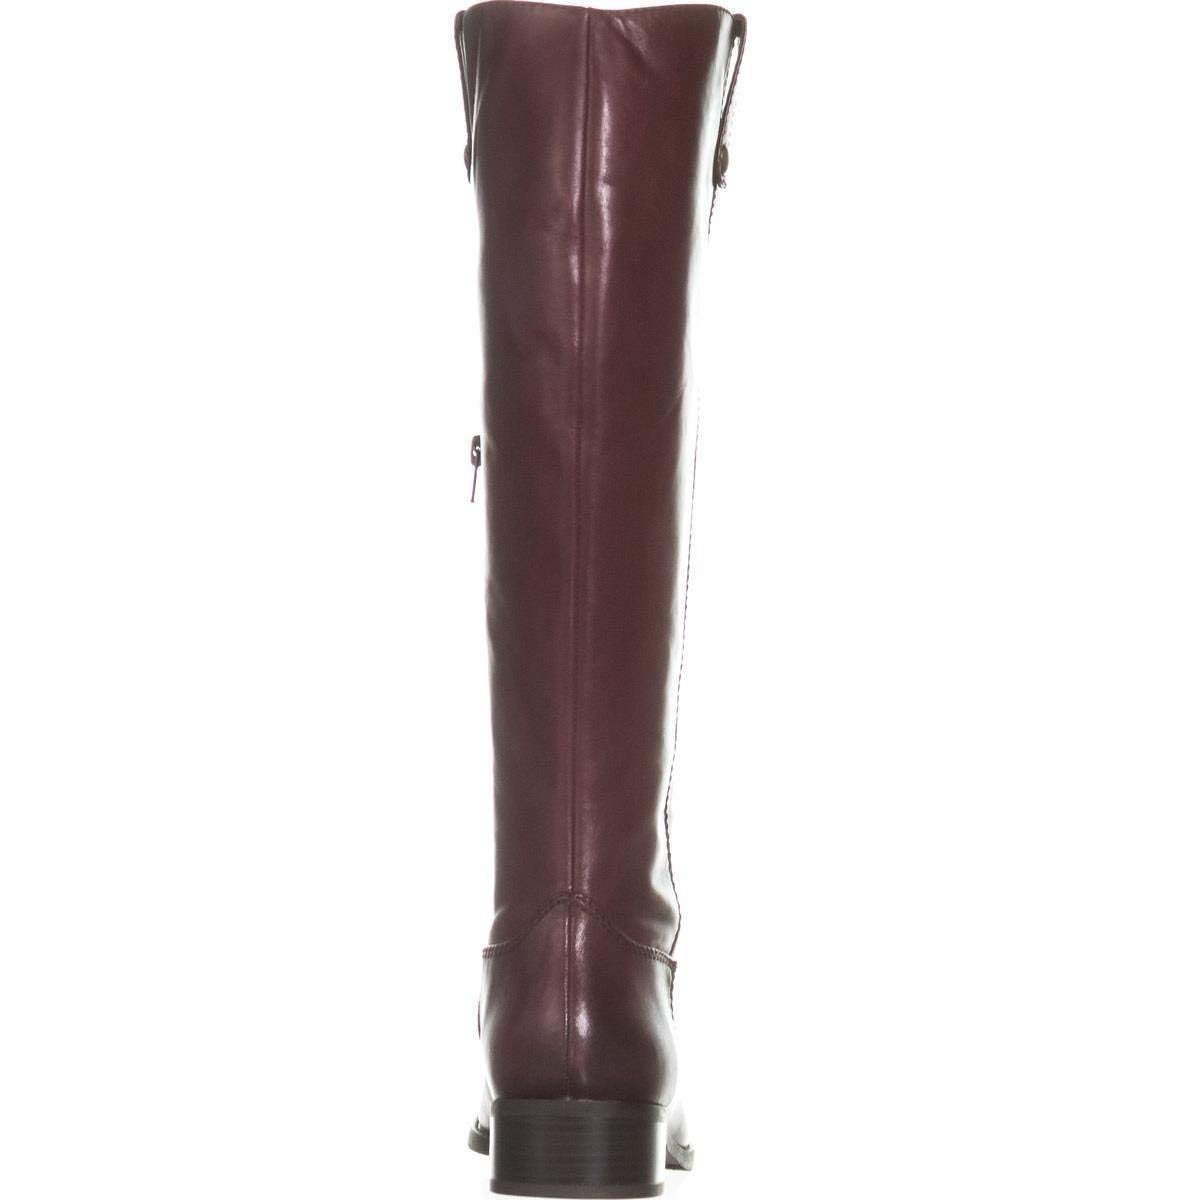 International Womens Toe Concepts Knee High Boots Closed Inc Fawne Red Fashion Exqdw7XEU